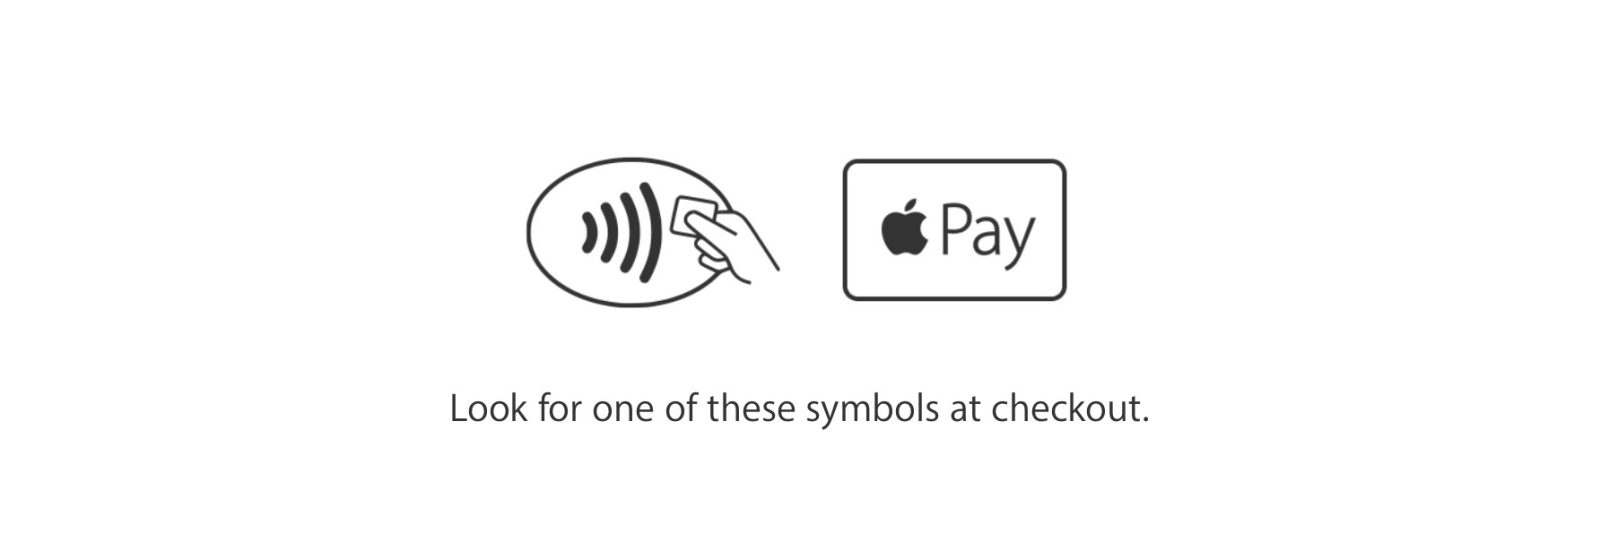 How To Set Up Apple Pay On Iphone Ipad Apple Watch Or Mac 9to5mac